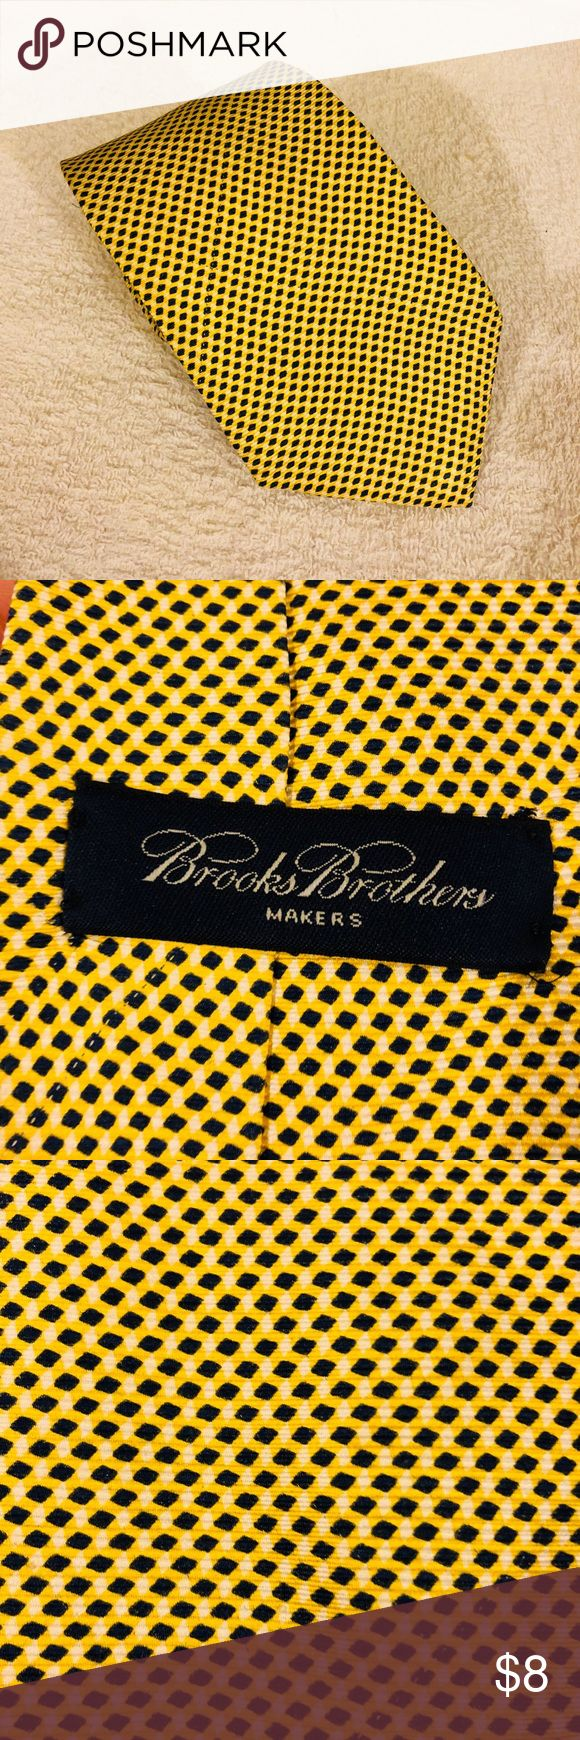 Brooks Brothers Gold, Navy & White Check Tie Brooks Brothers Gold, Navy Blue and White Check Silk Necktie! Great condition! Please make reasonable offers and bundle! Ask questions! Brooks Brothers Accessories Ties